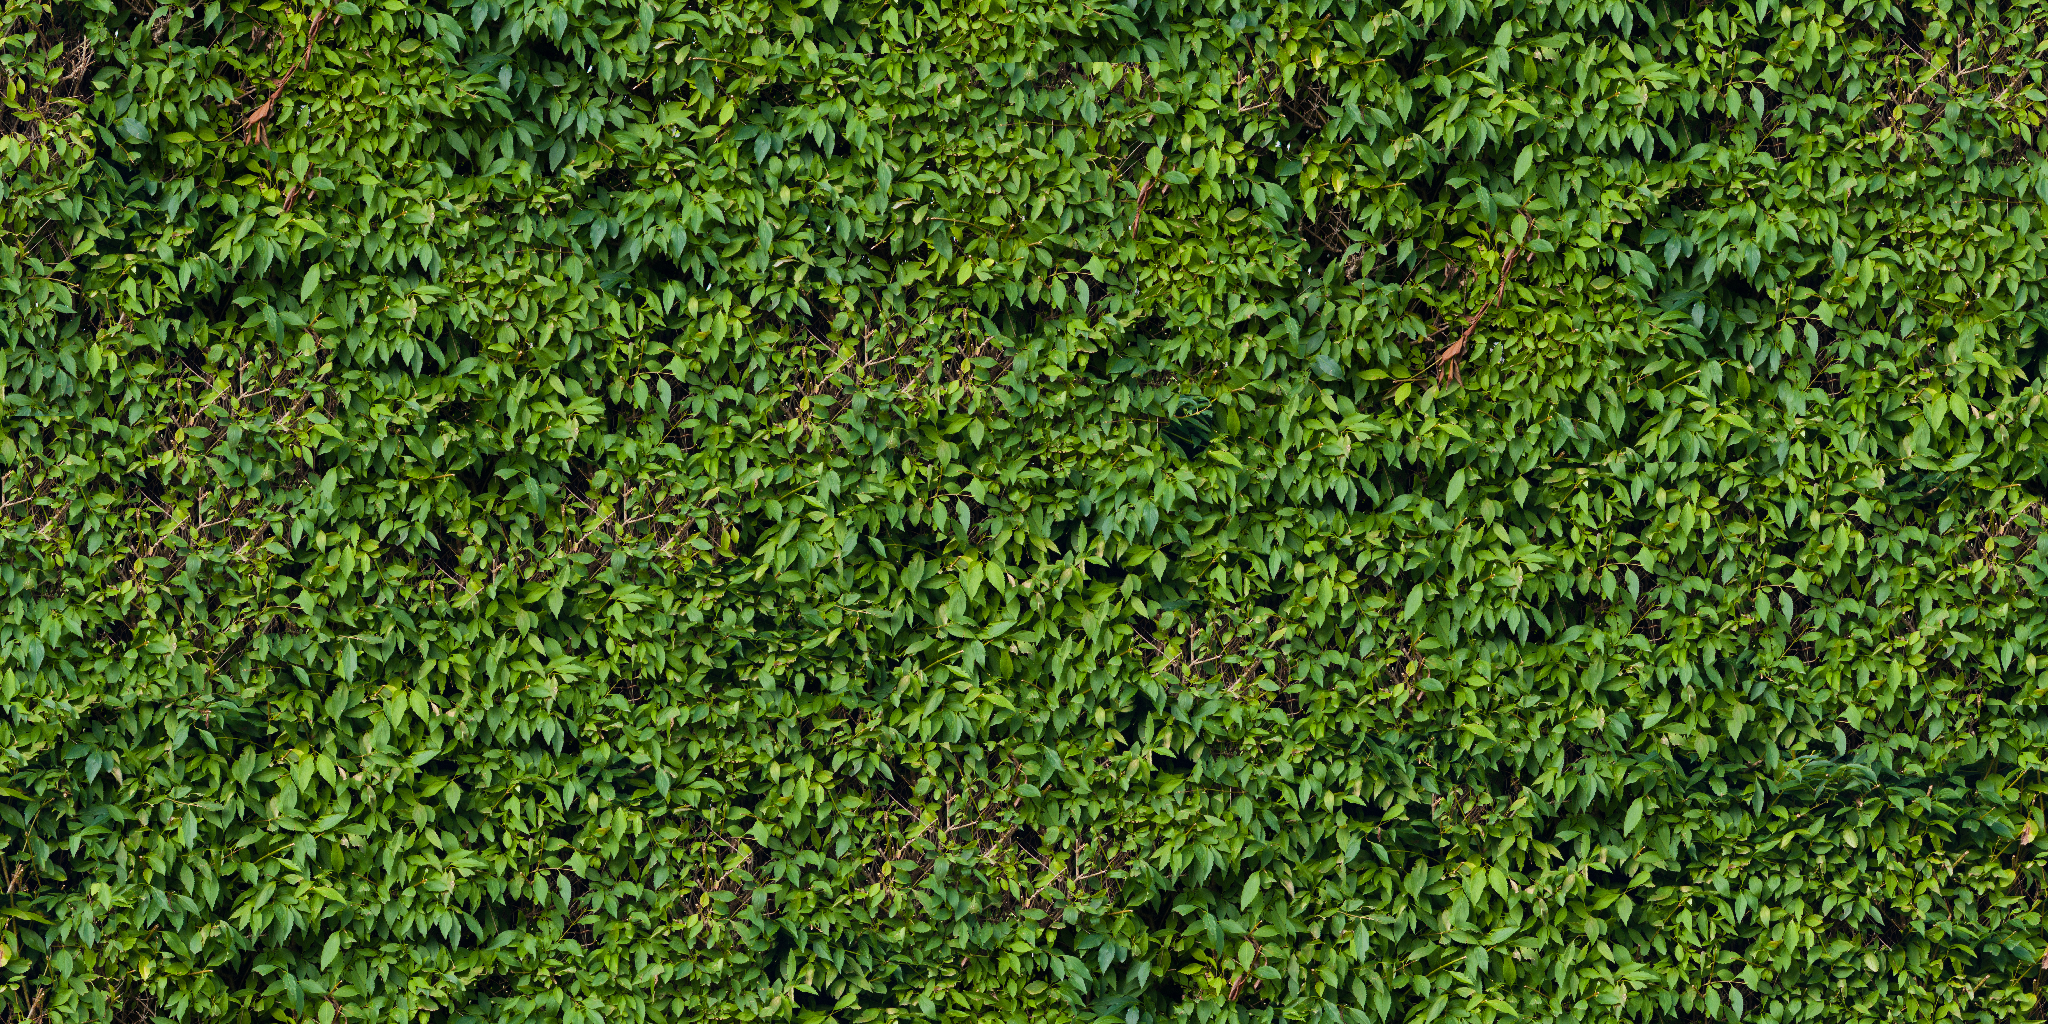 Hedge Seamless Texture Pack Vegetation Hedge 24 Png